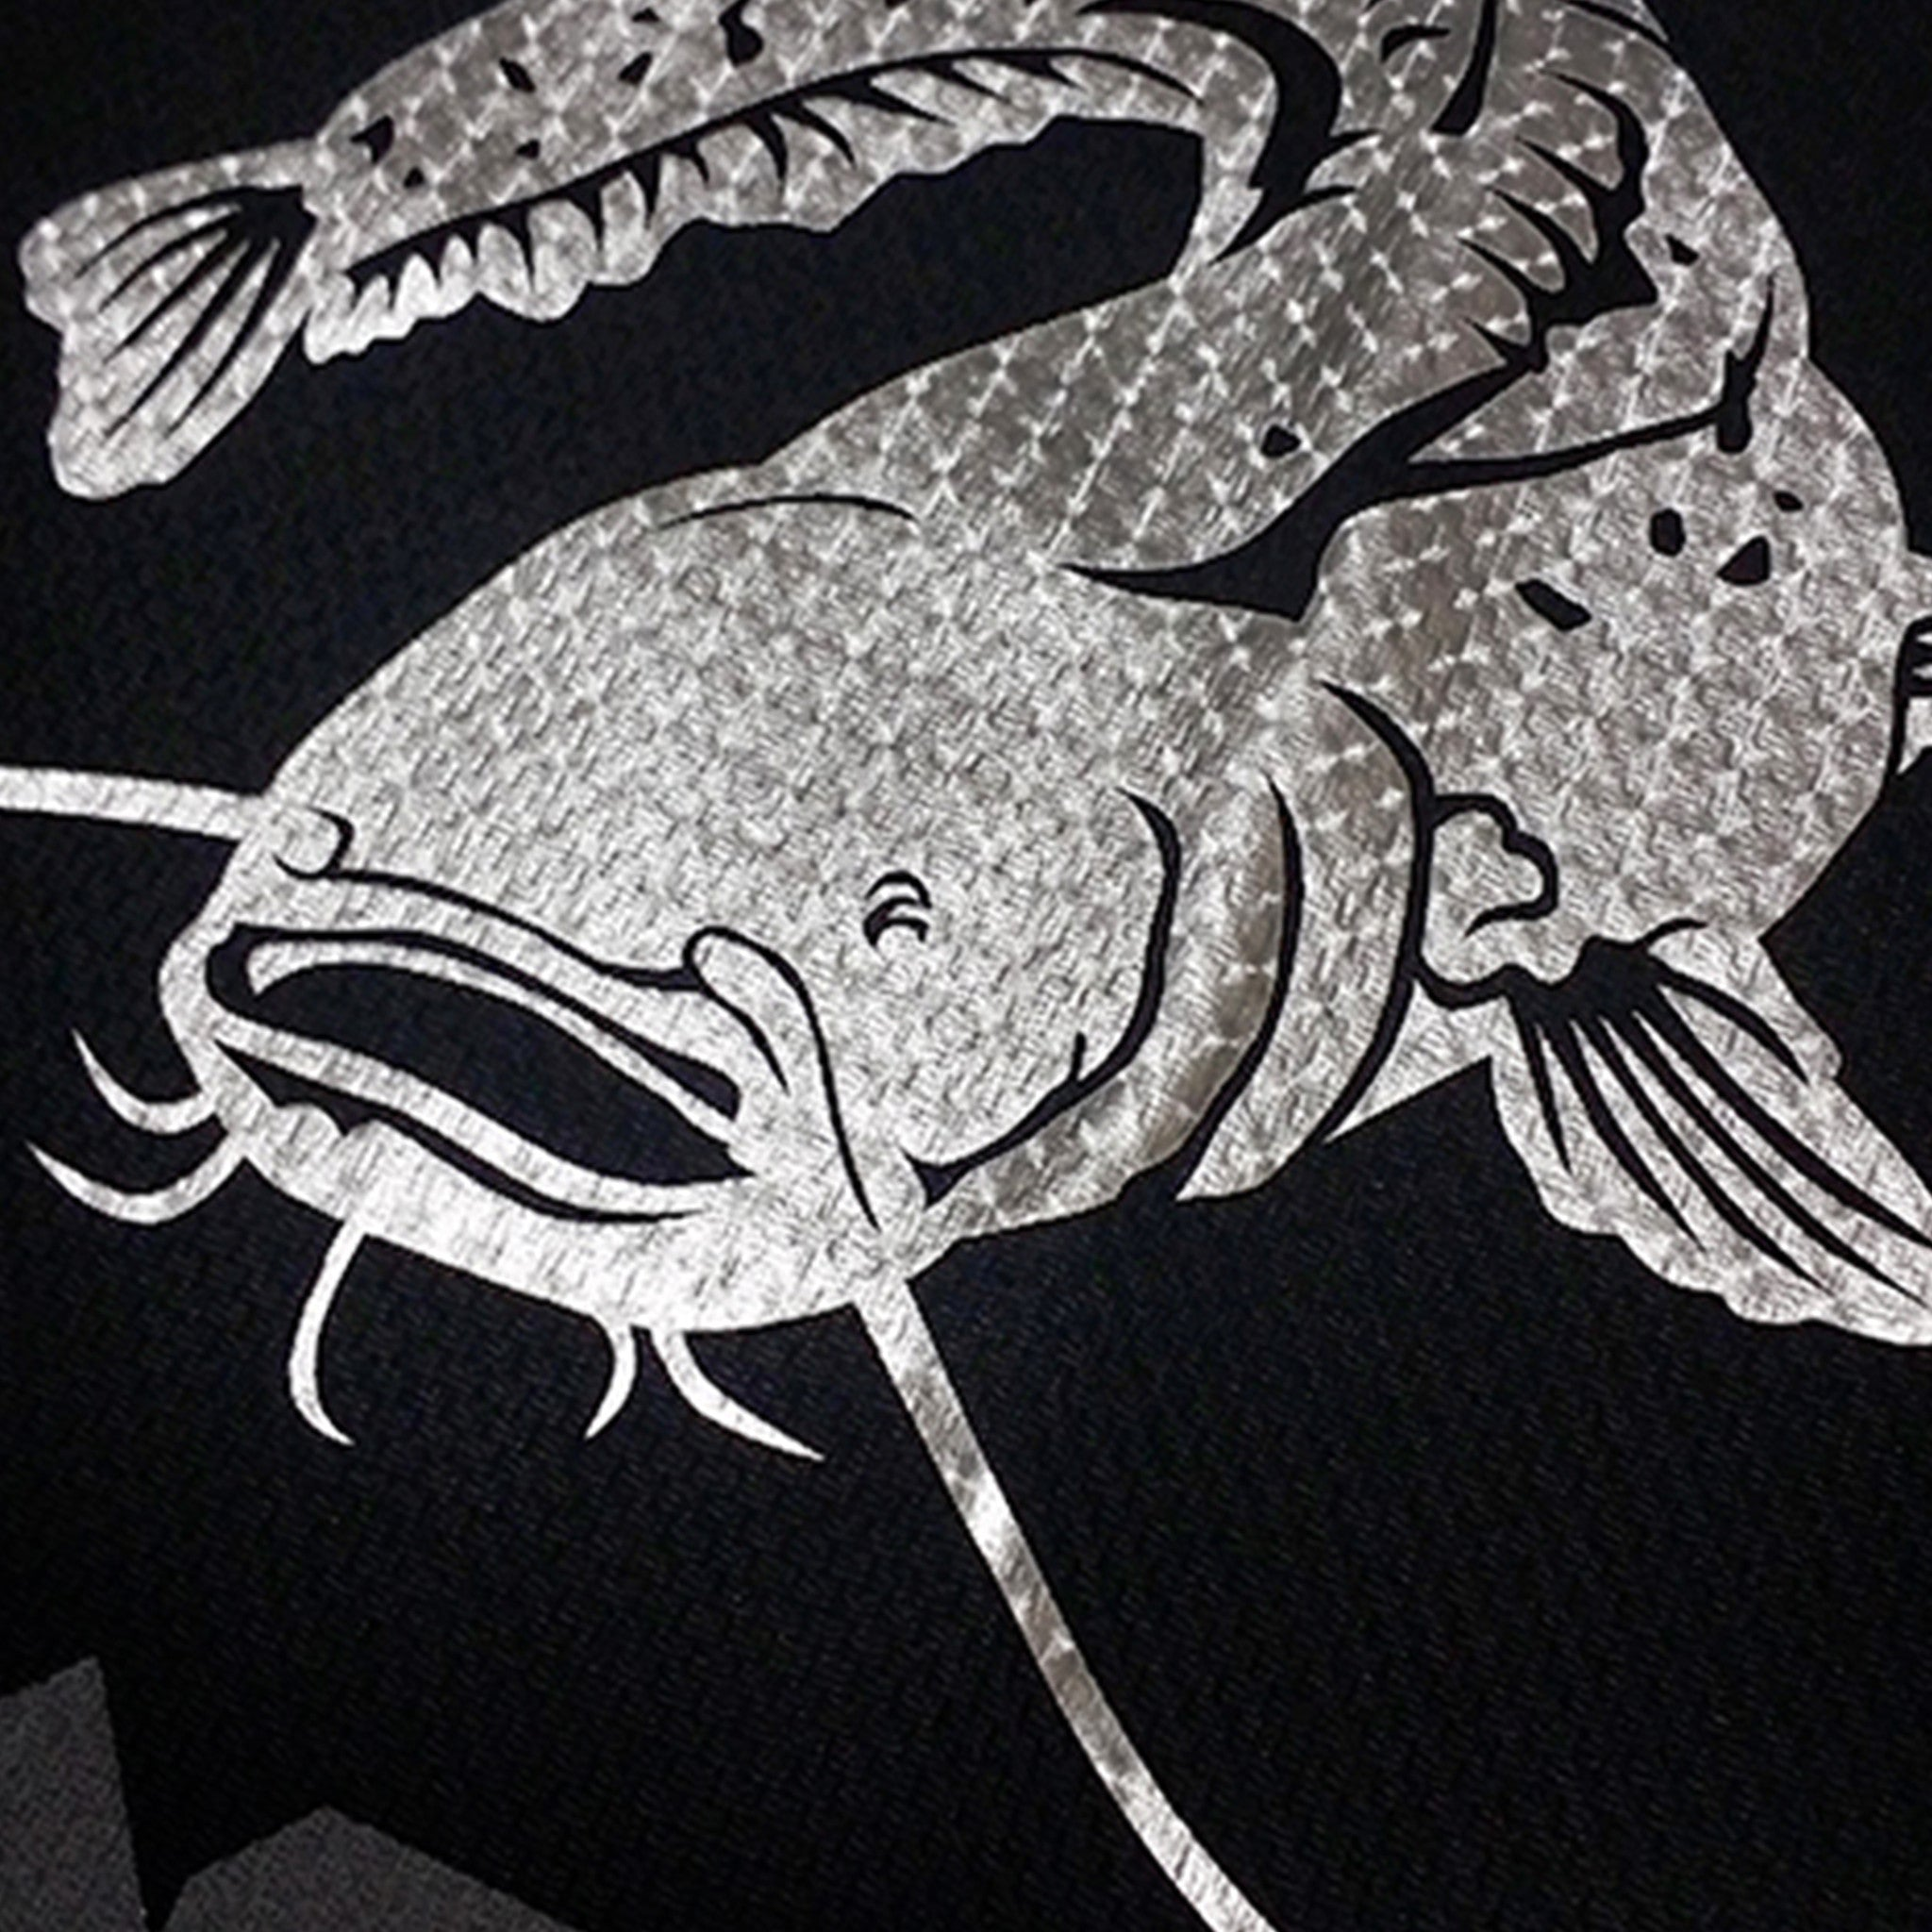 SportyFish Black Series black Long-sleeves t-shirt: Wels Catfish close-up view